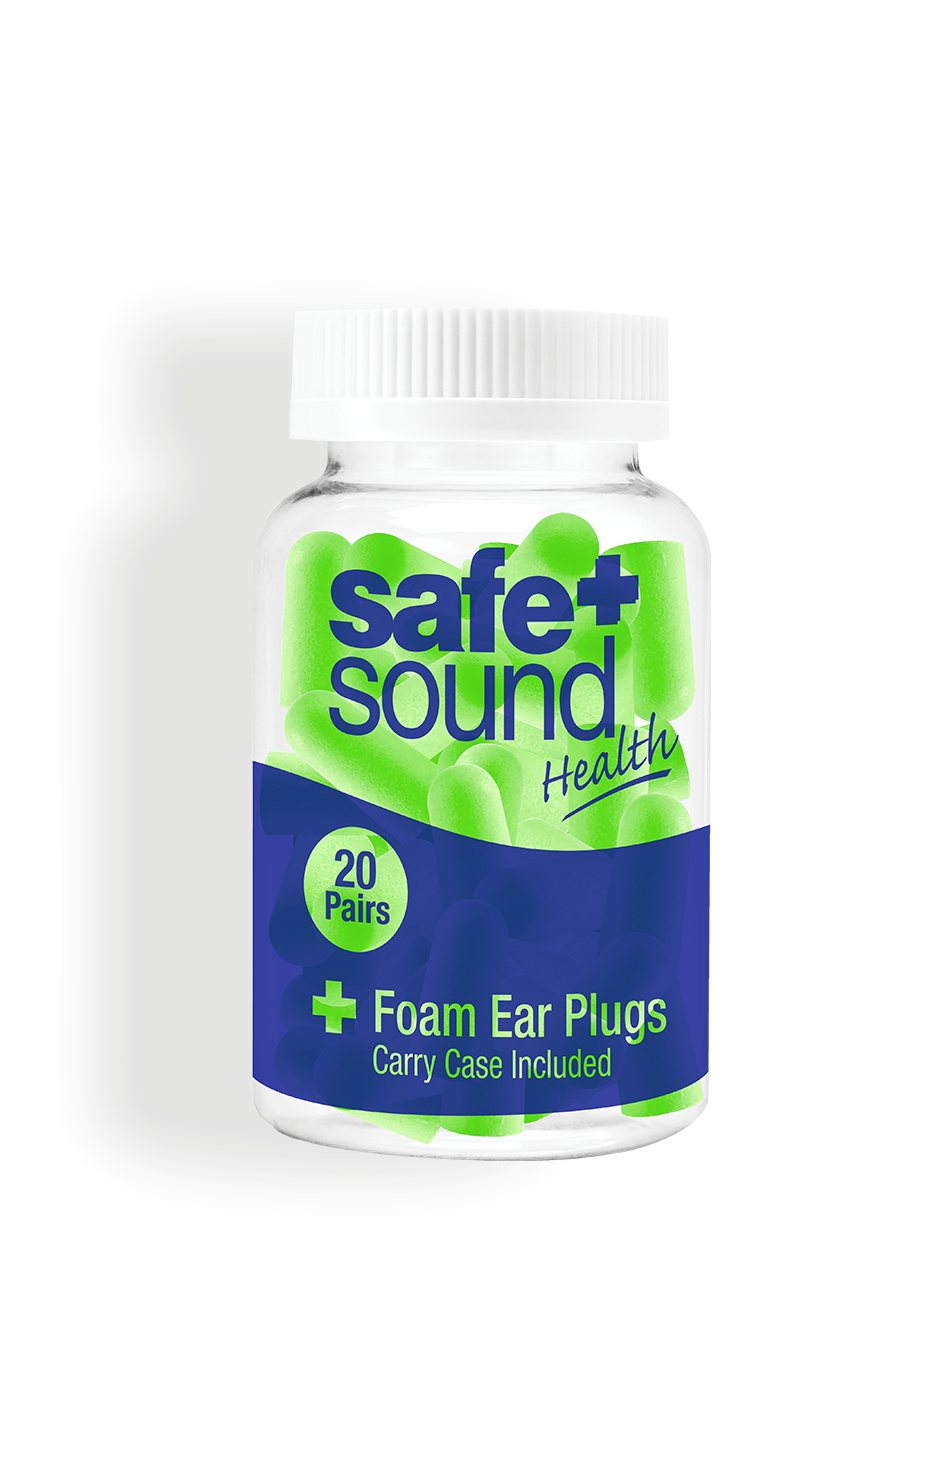 Safe and Sound Health Pack of 20 Foam Earplugs